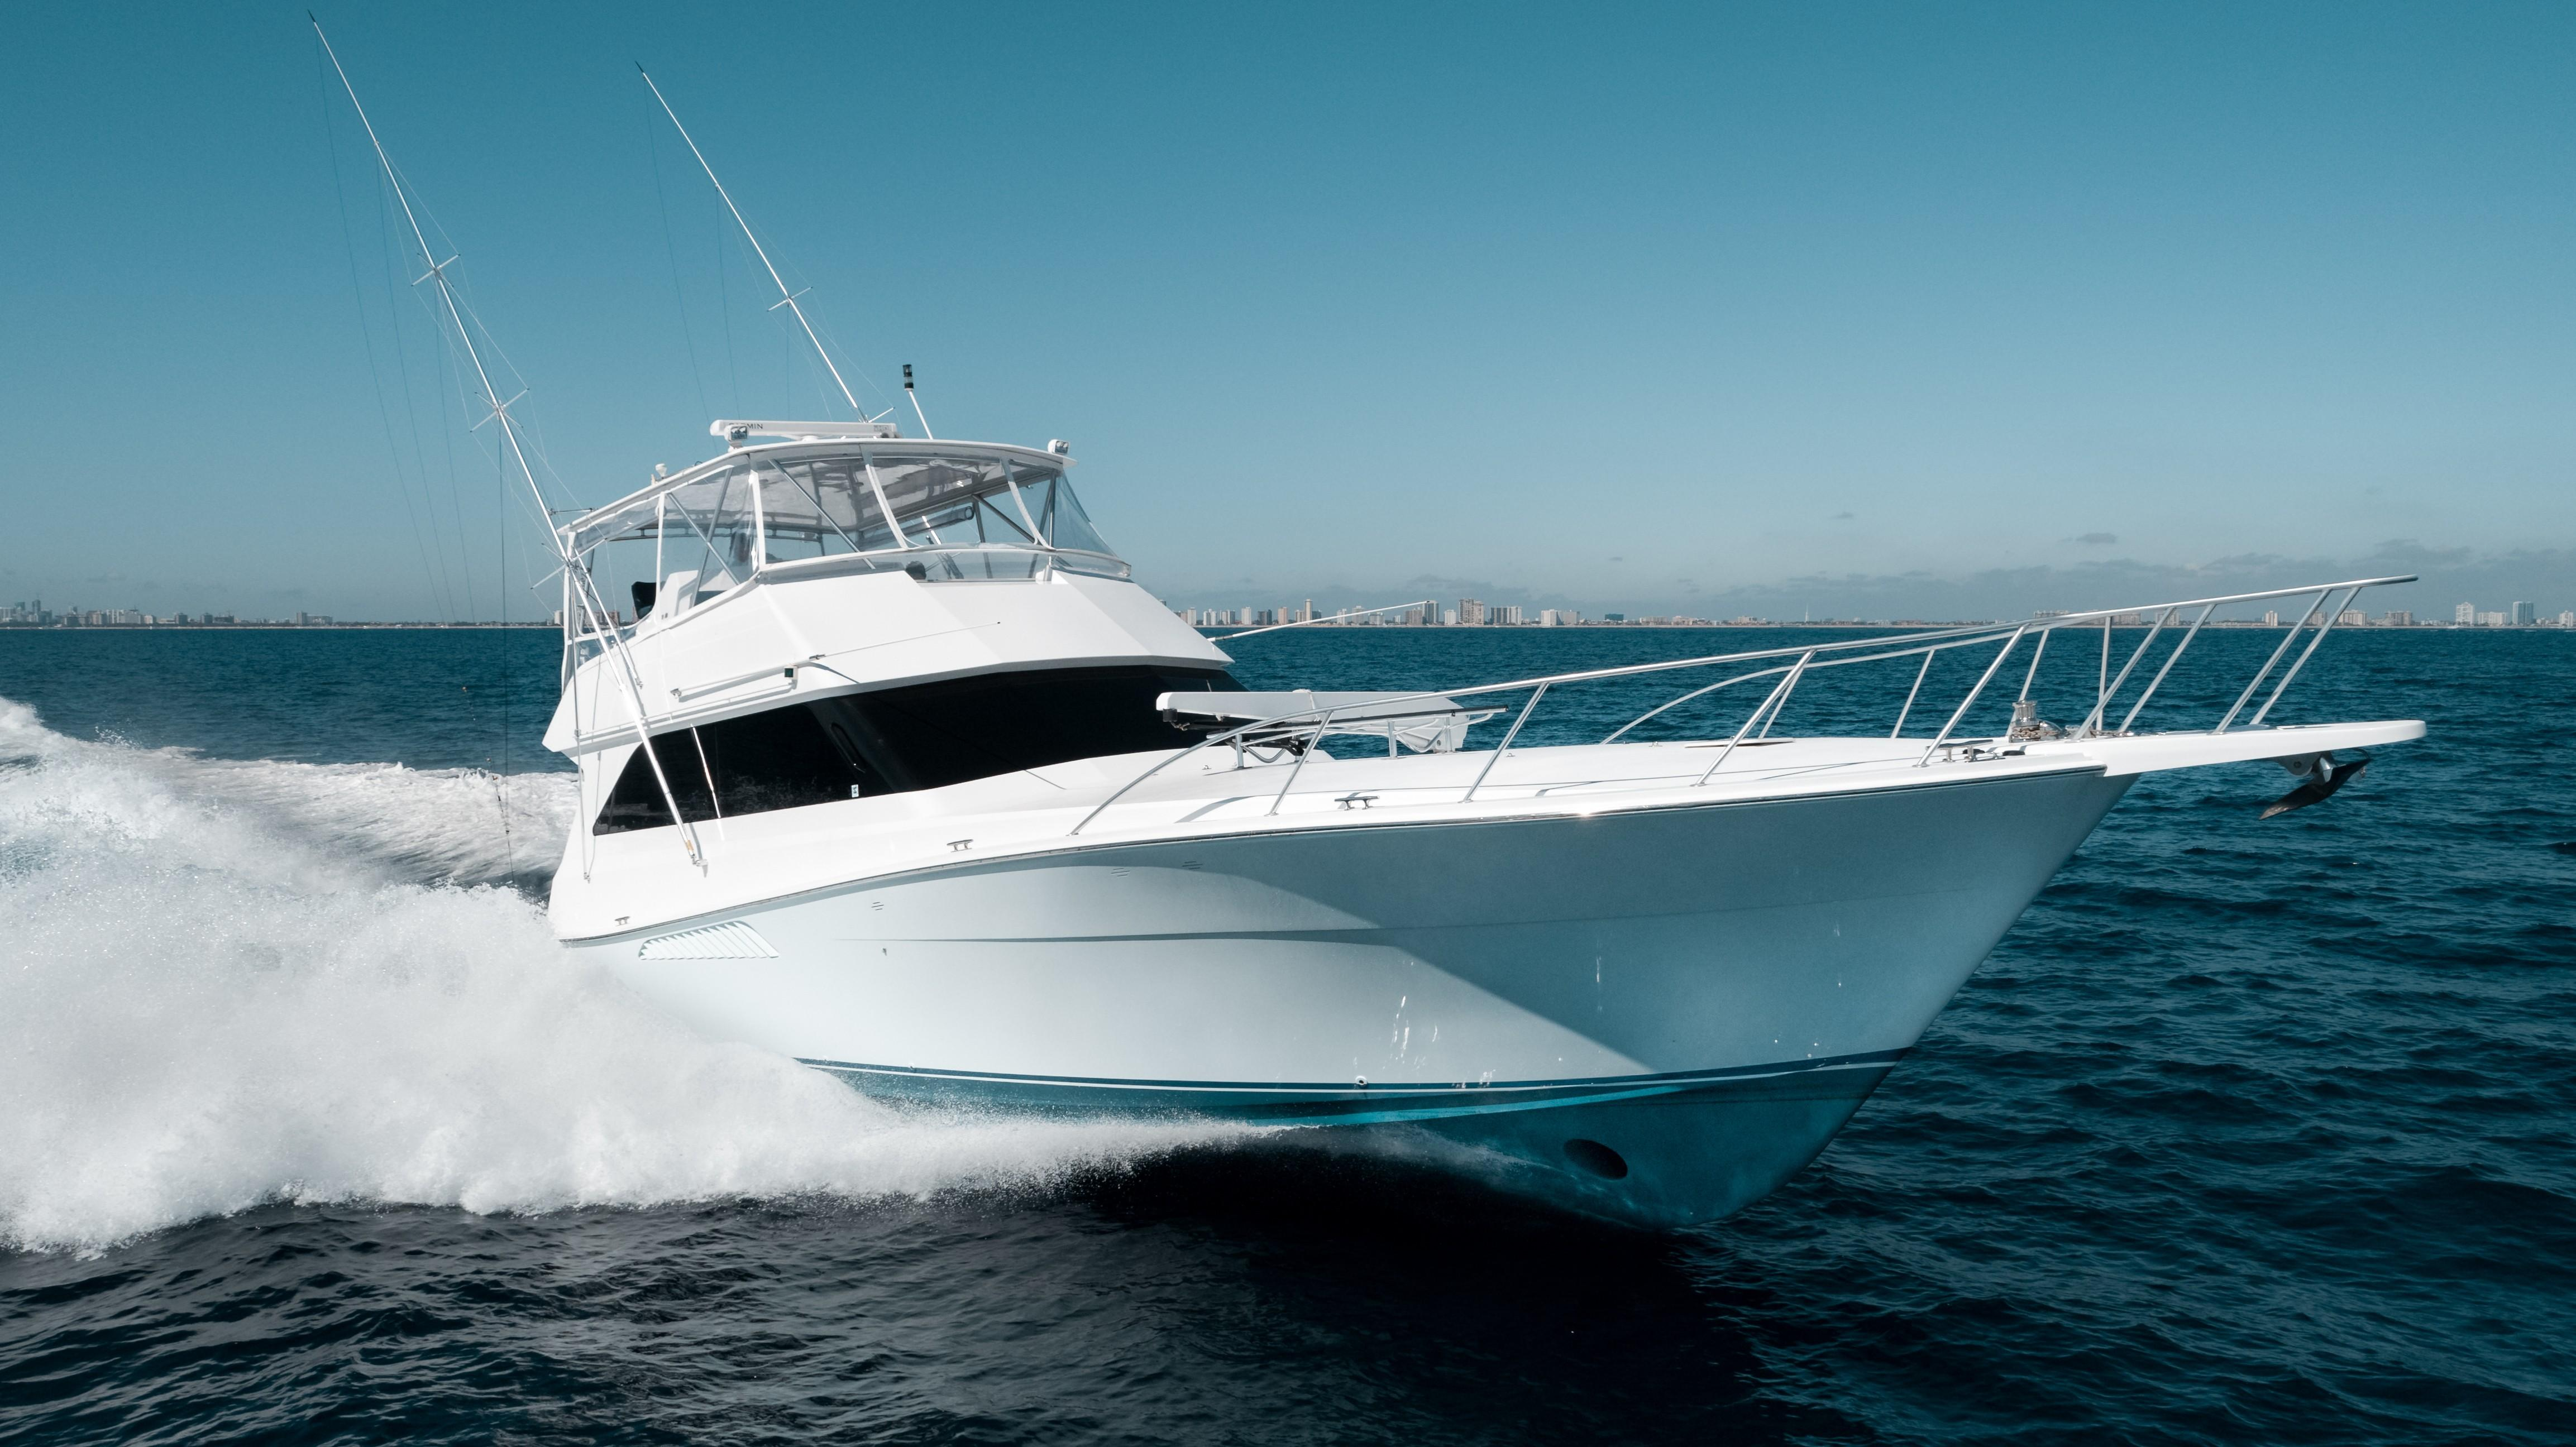 58 Viking Knotty Girl 2000 Fort Lauderdale | Denison Yacht Sales